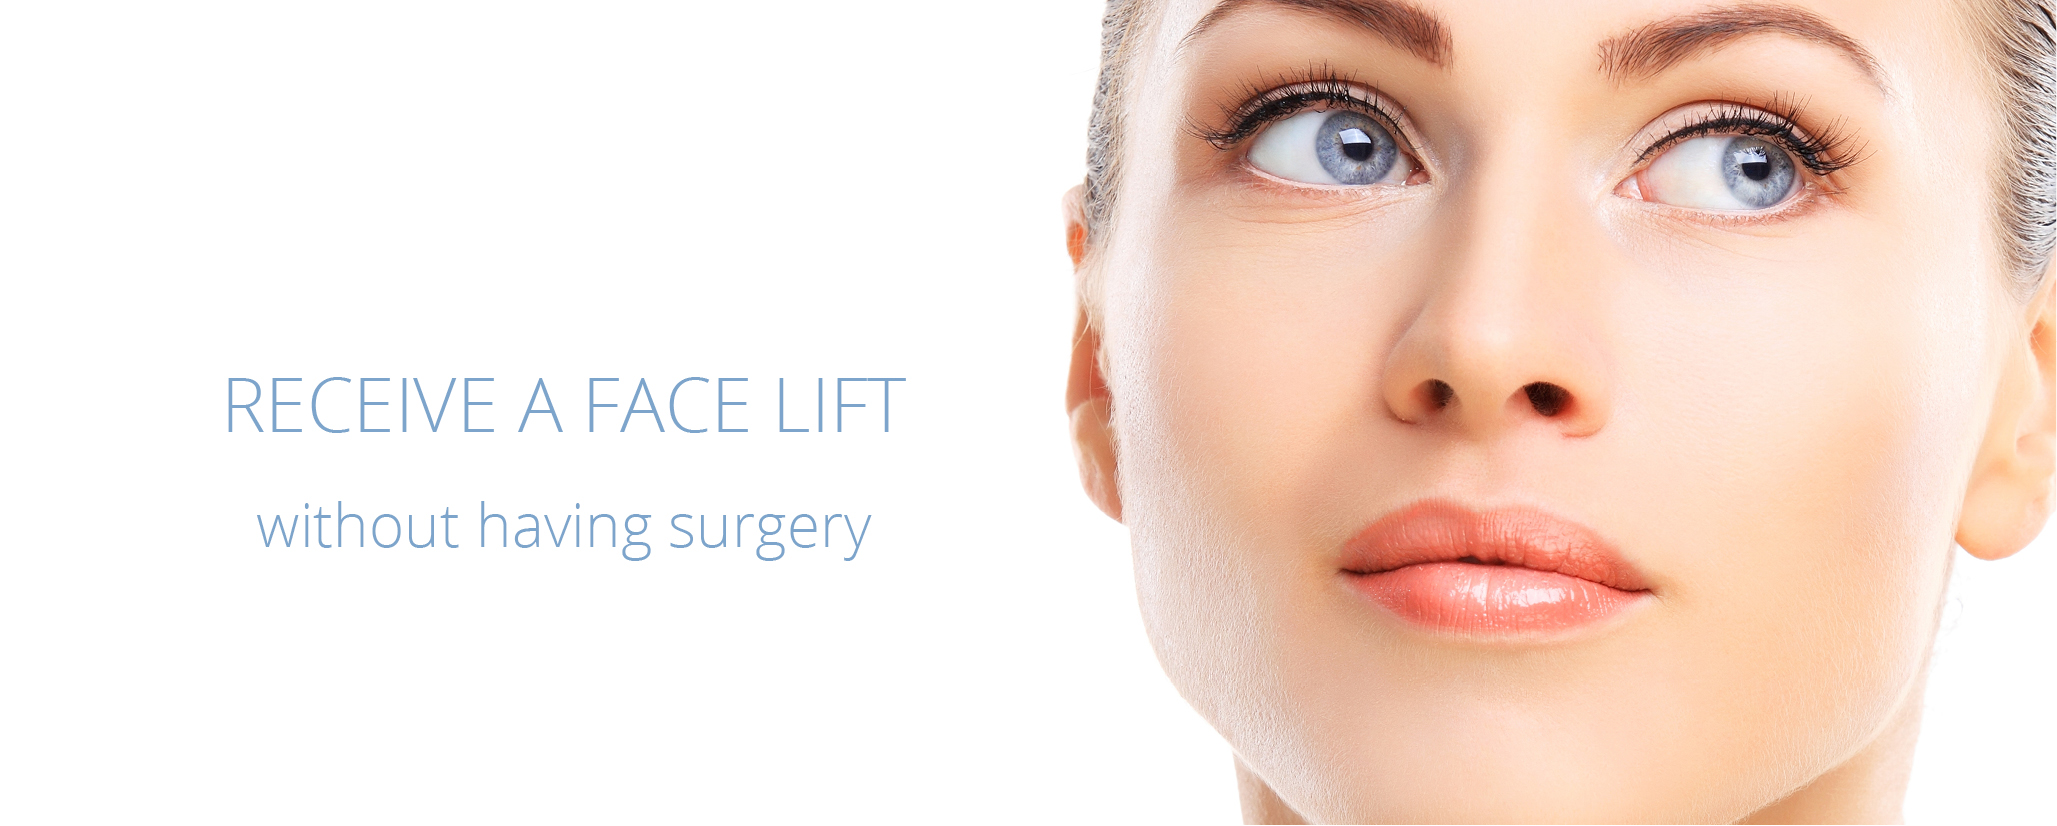 4d Face Lift In Jacksonville Fl The Natural Face Lift